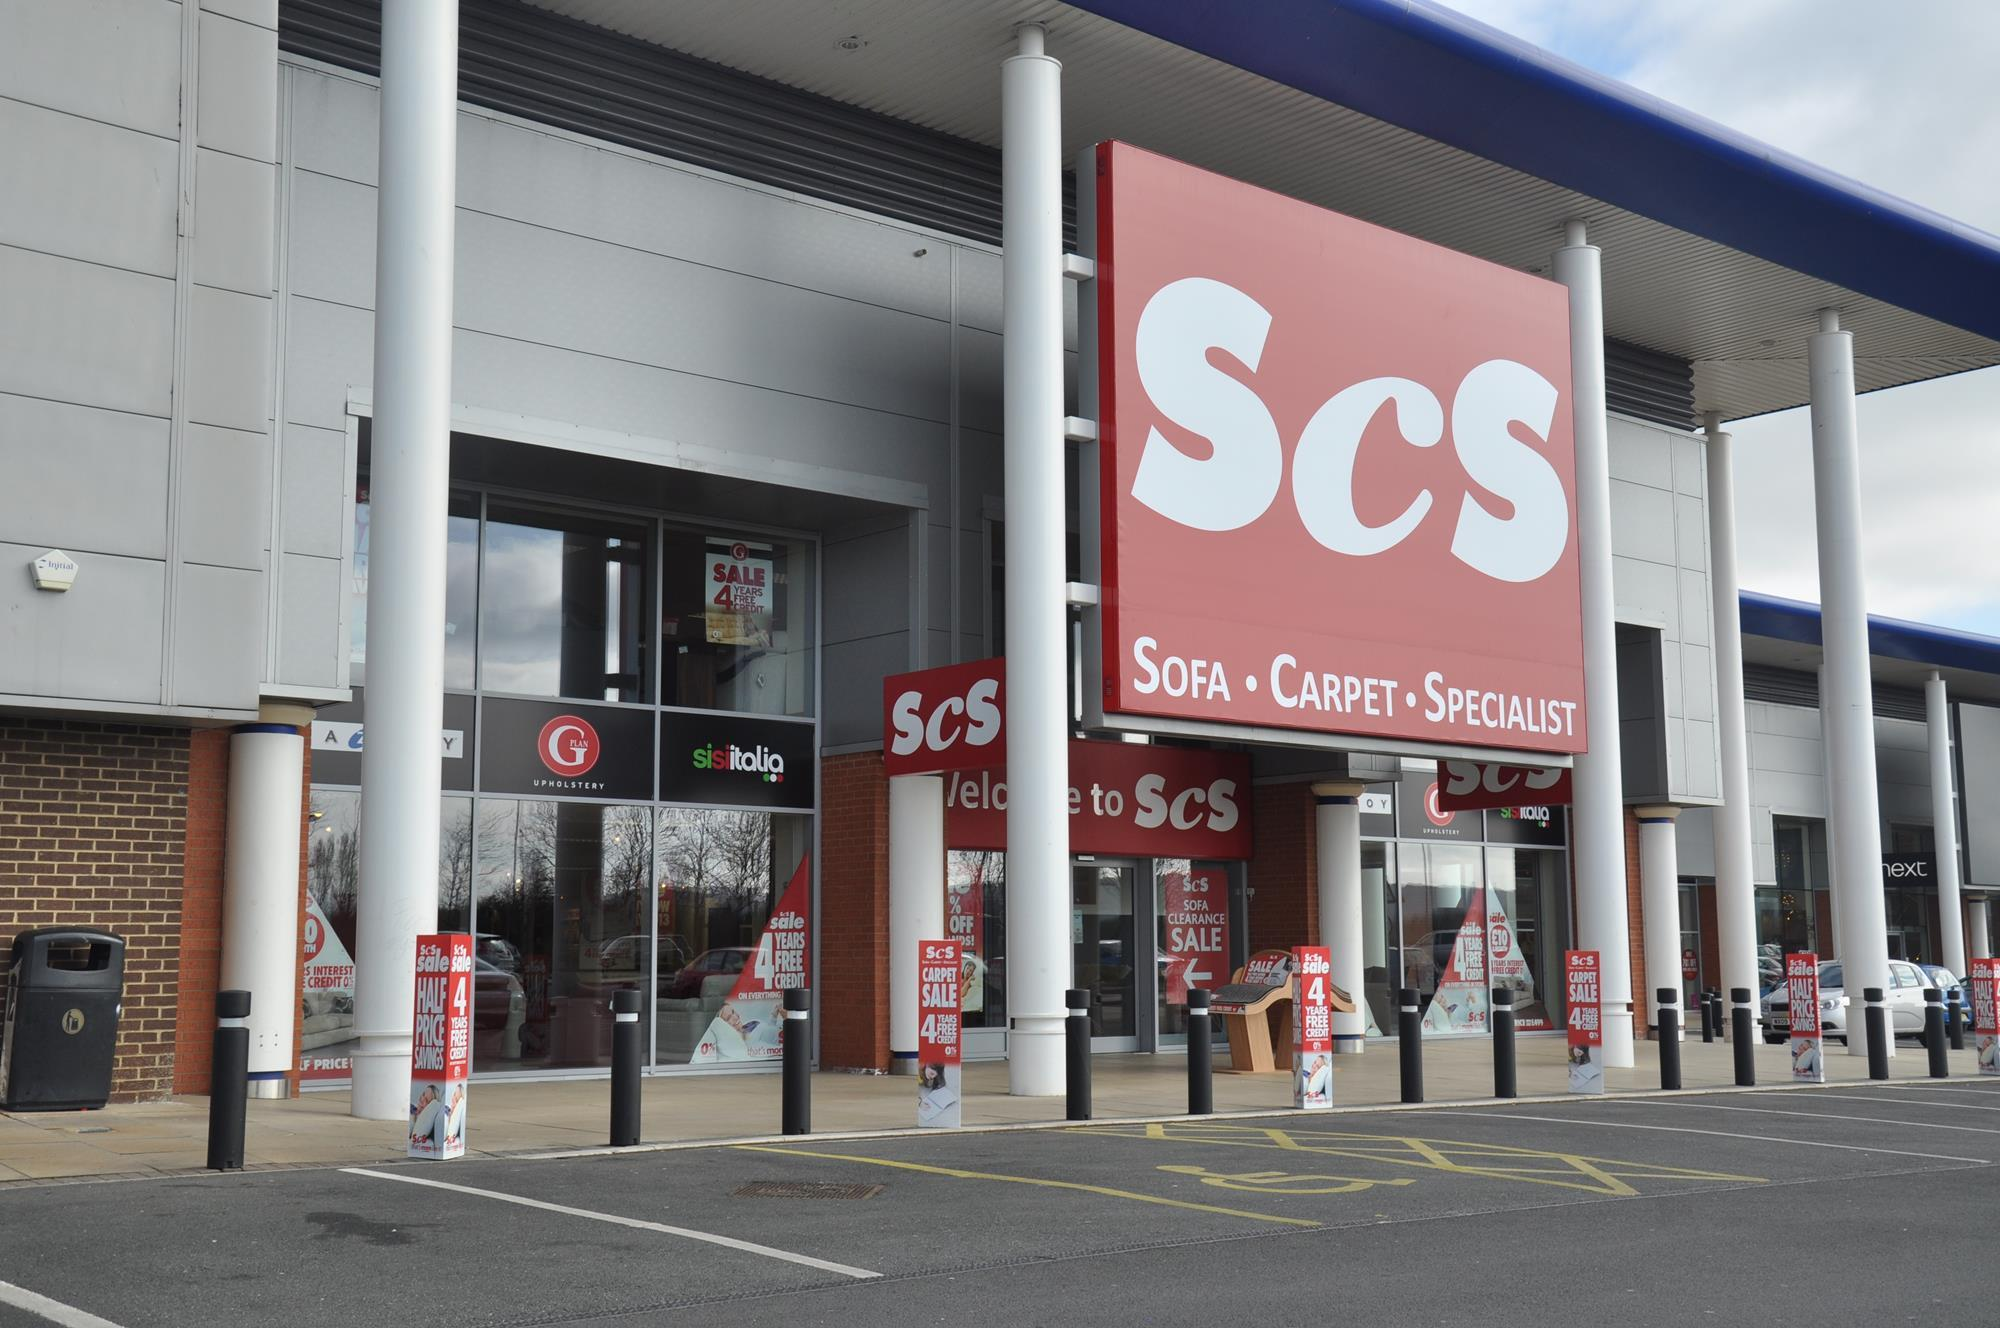 Scs Bedroom Furniture Analysis Will 2015 Be A Big Year For Big Ticket Furniture